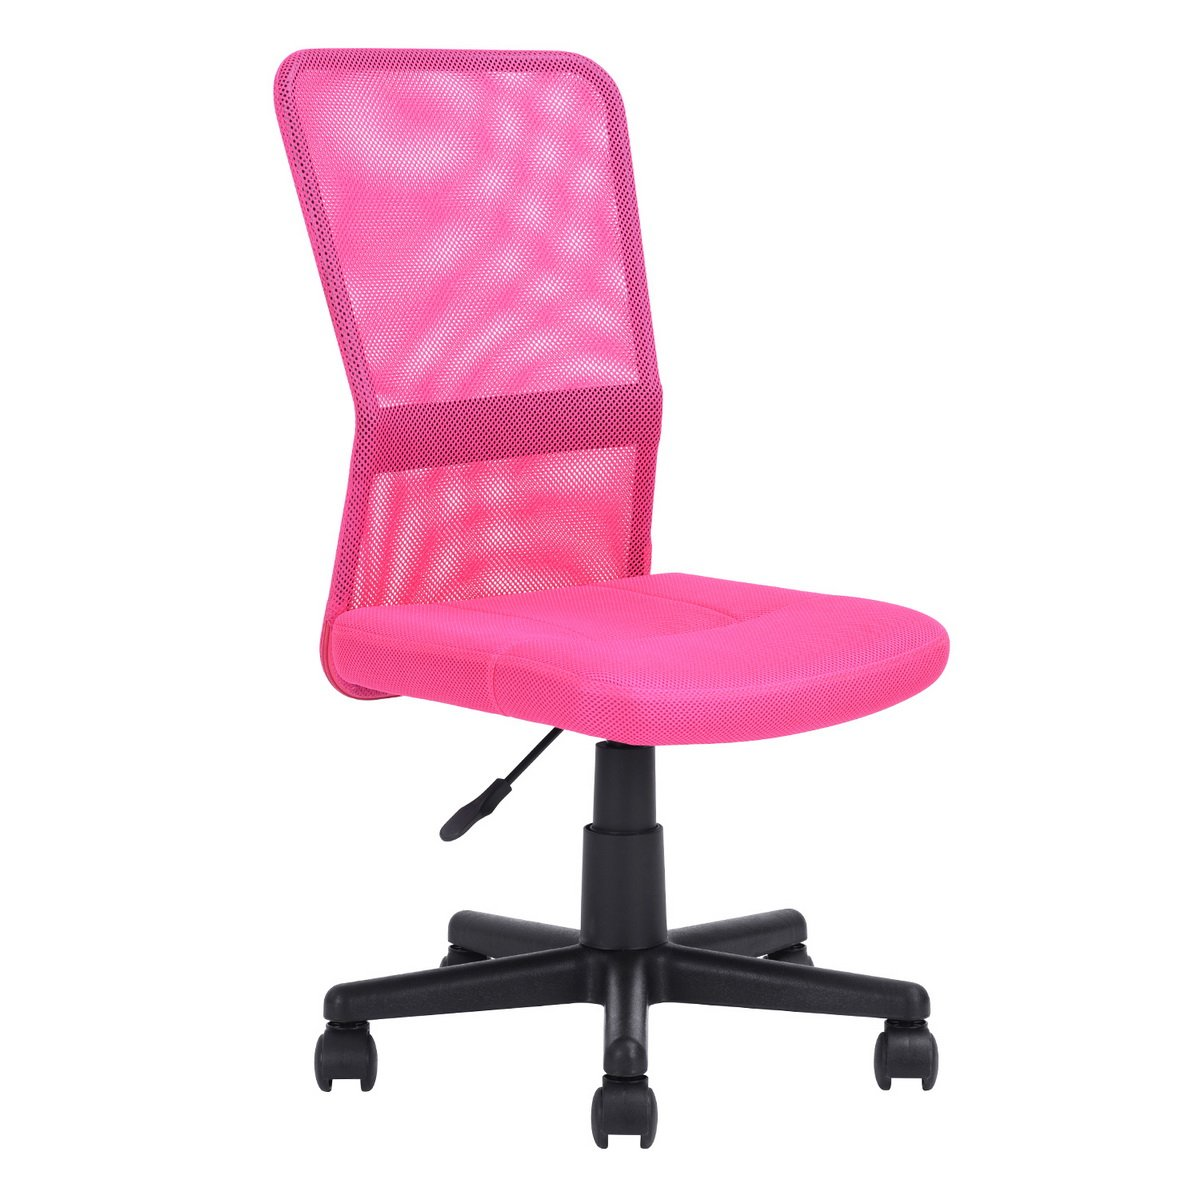 Charmant N.B.F. Office Chair Student Chair Swivel Seat In Fabric Pink